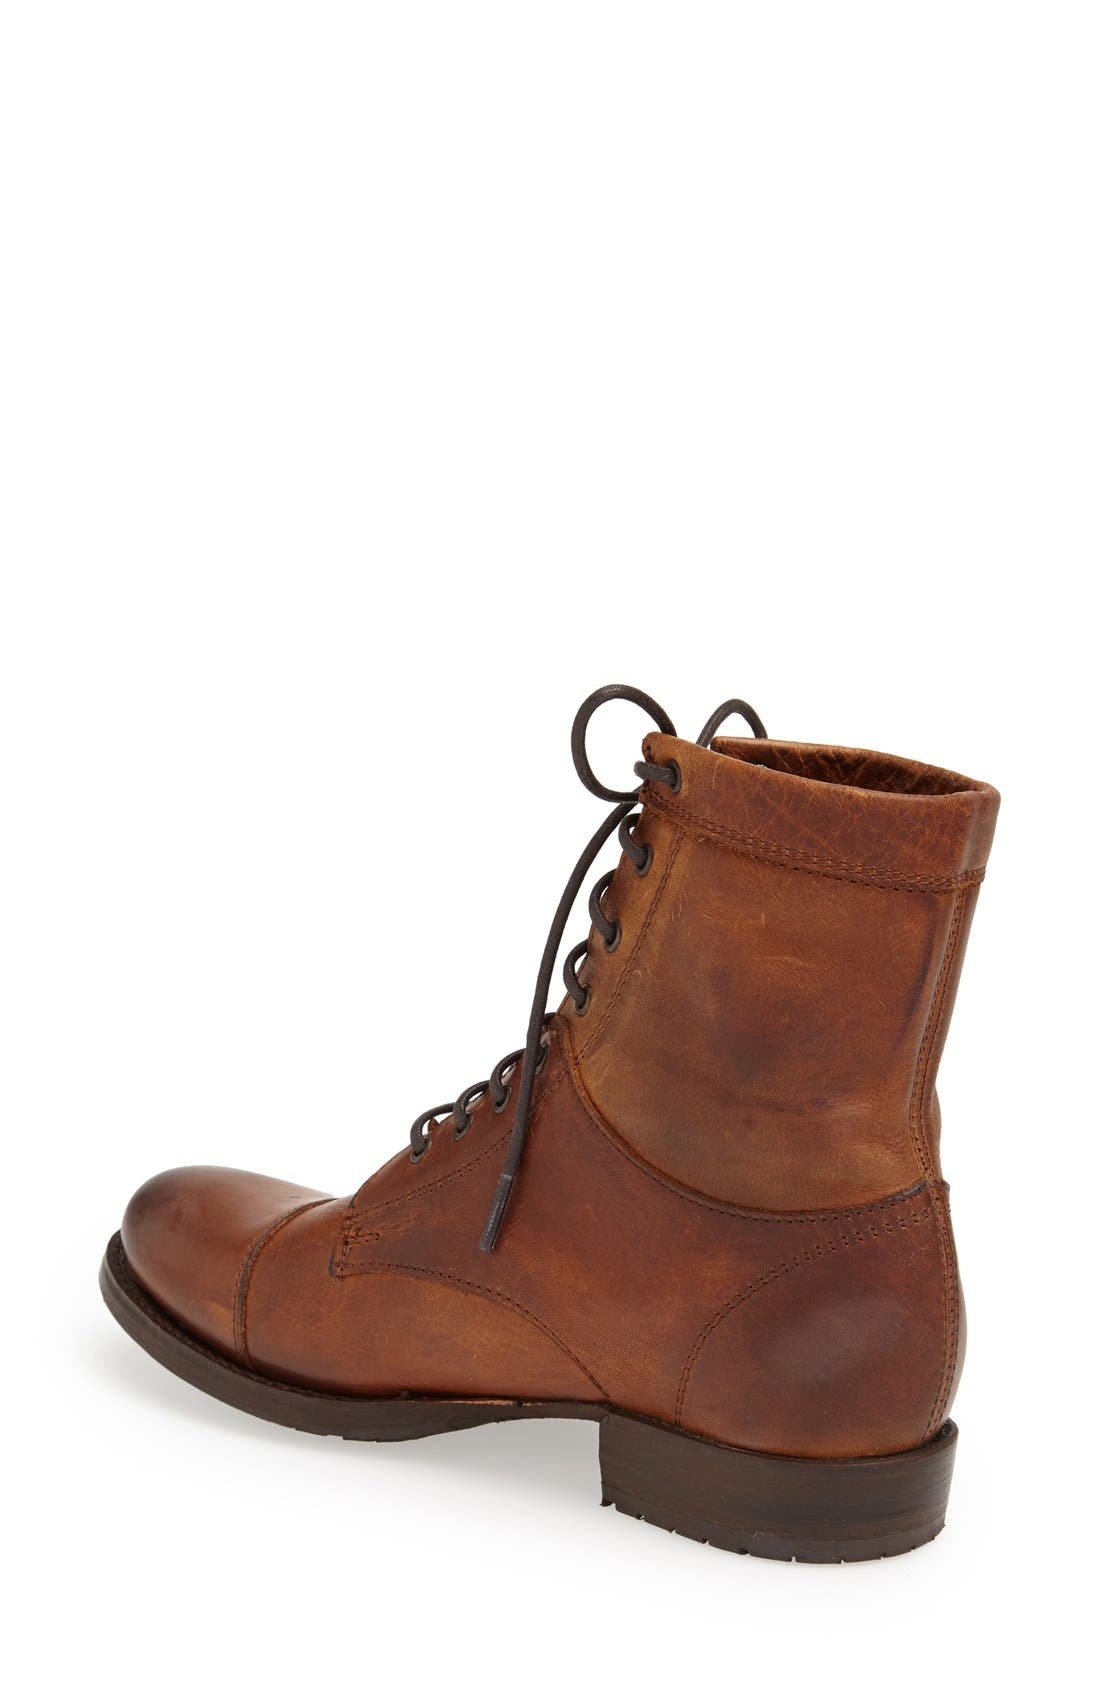 Alternate Image 2  - Frye 'Erin' Cap Toe Leather Lace-Up Boot (Women)